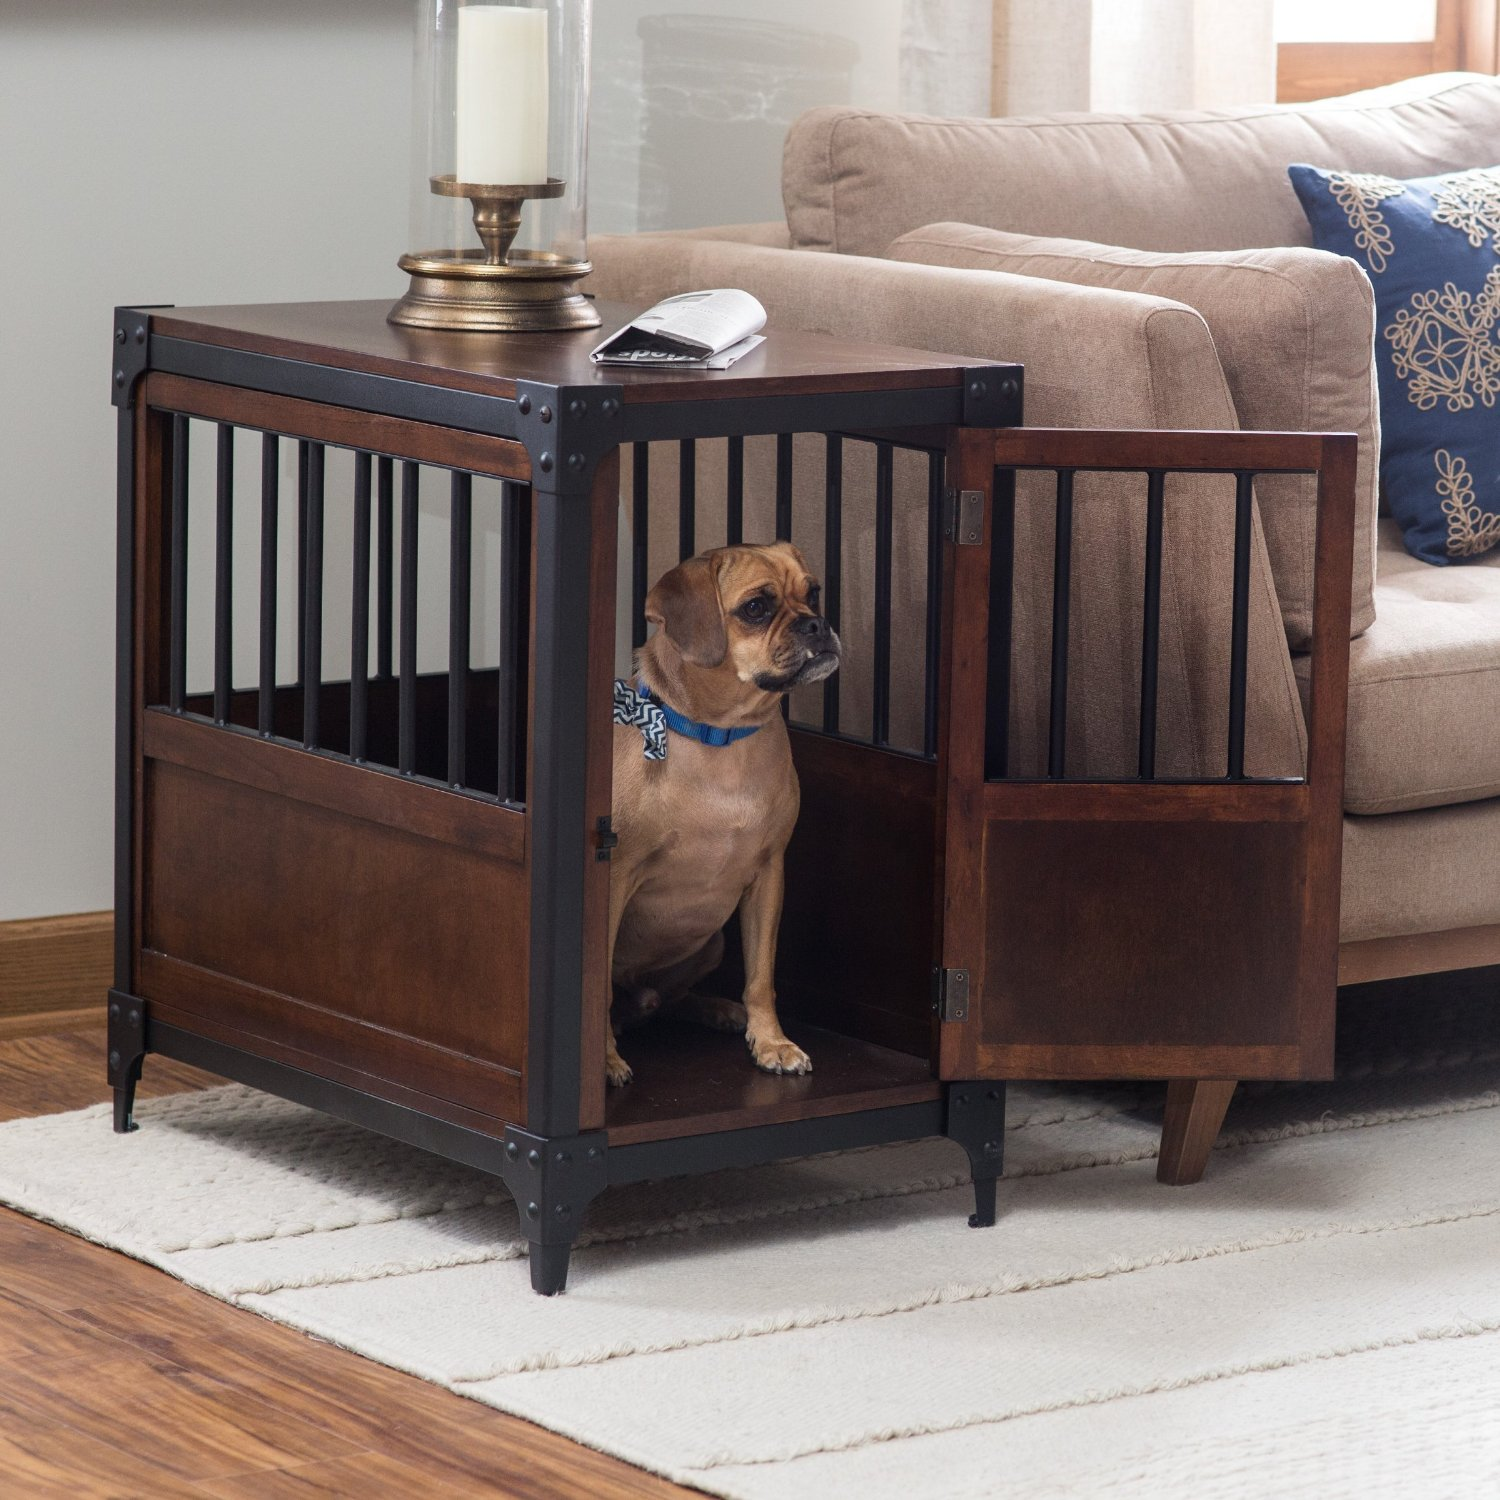 Dog crates that look like furniture pieces for Puppy dog kennels